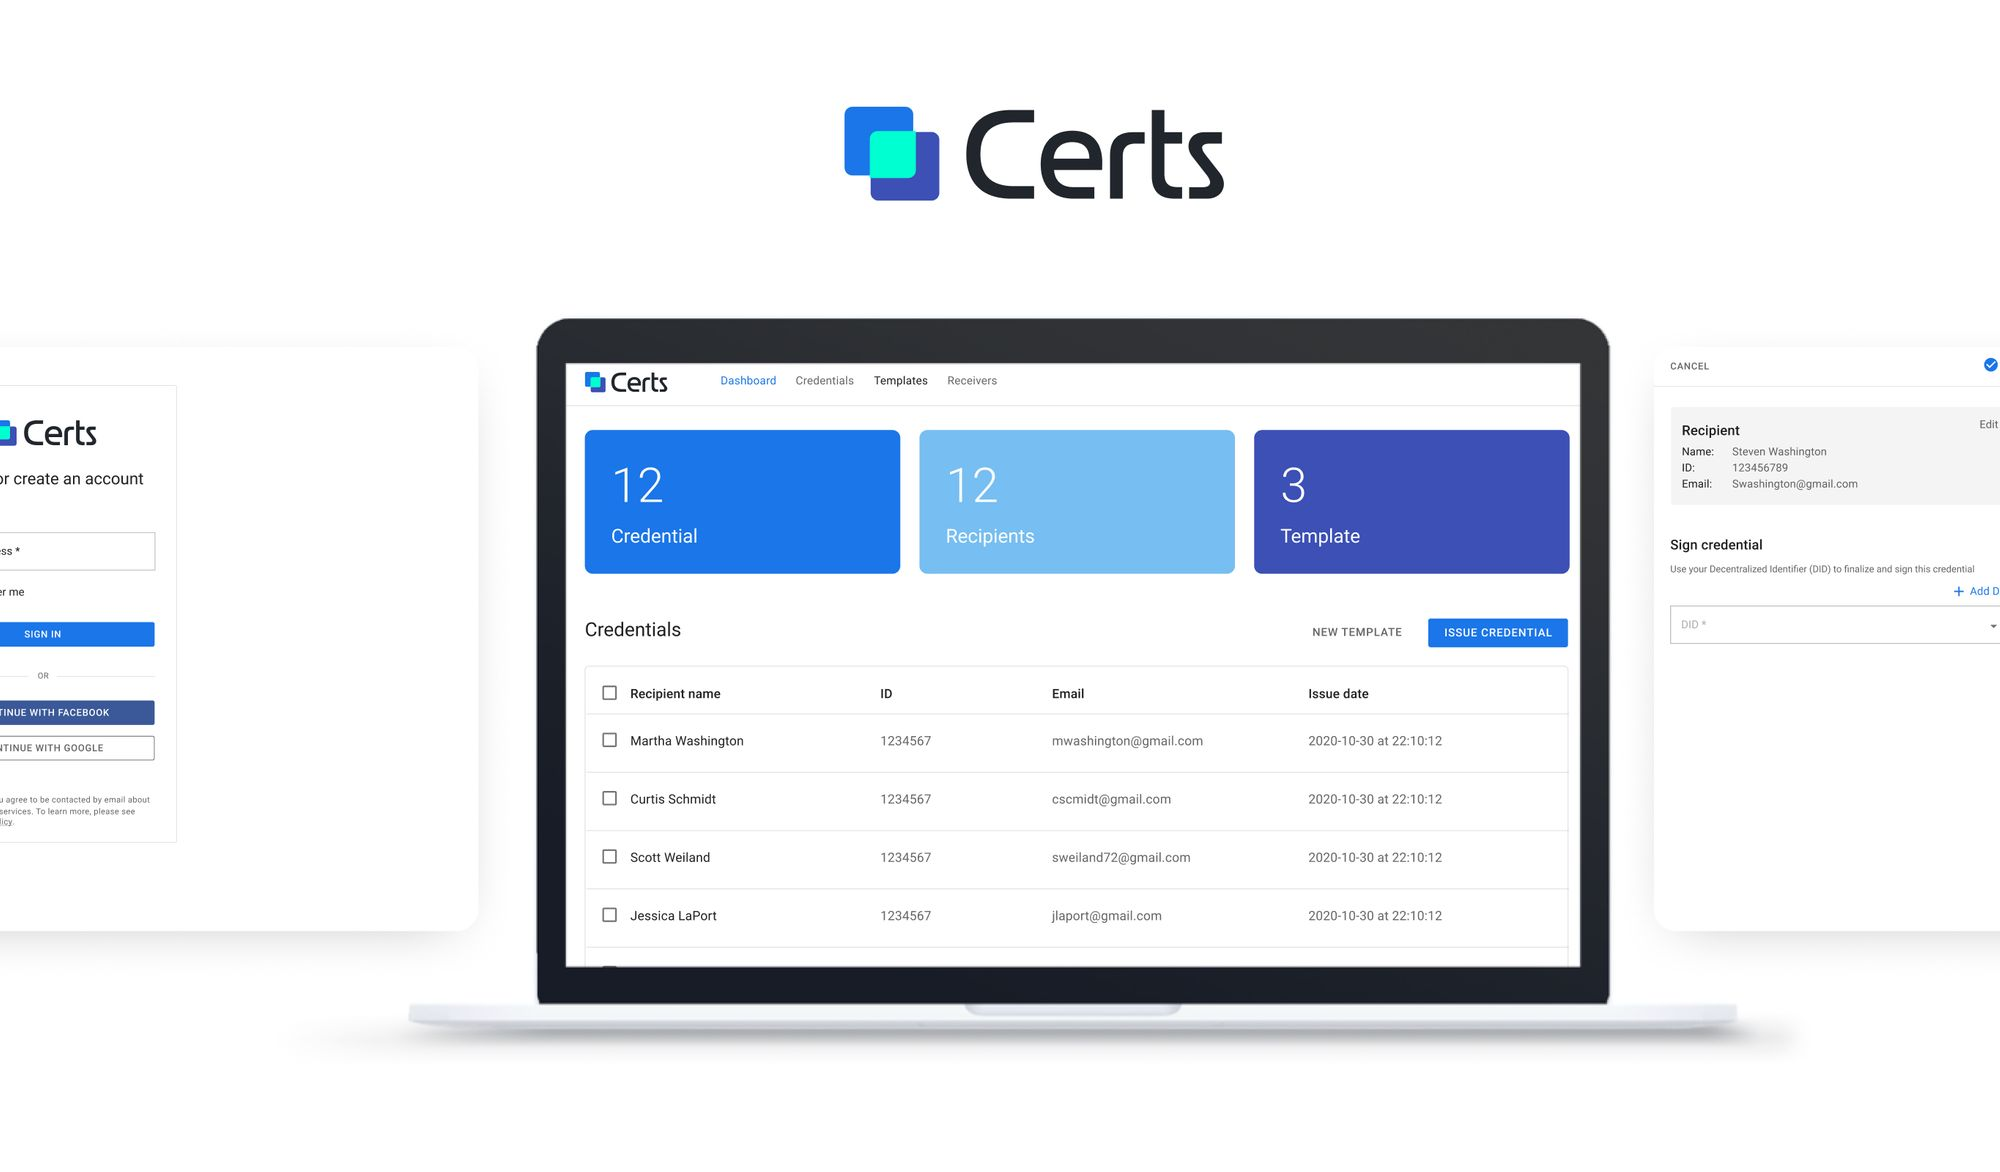 Certs: Now Available as a Self-Guided Demo